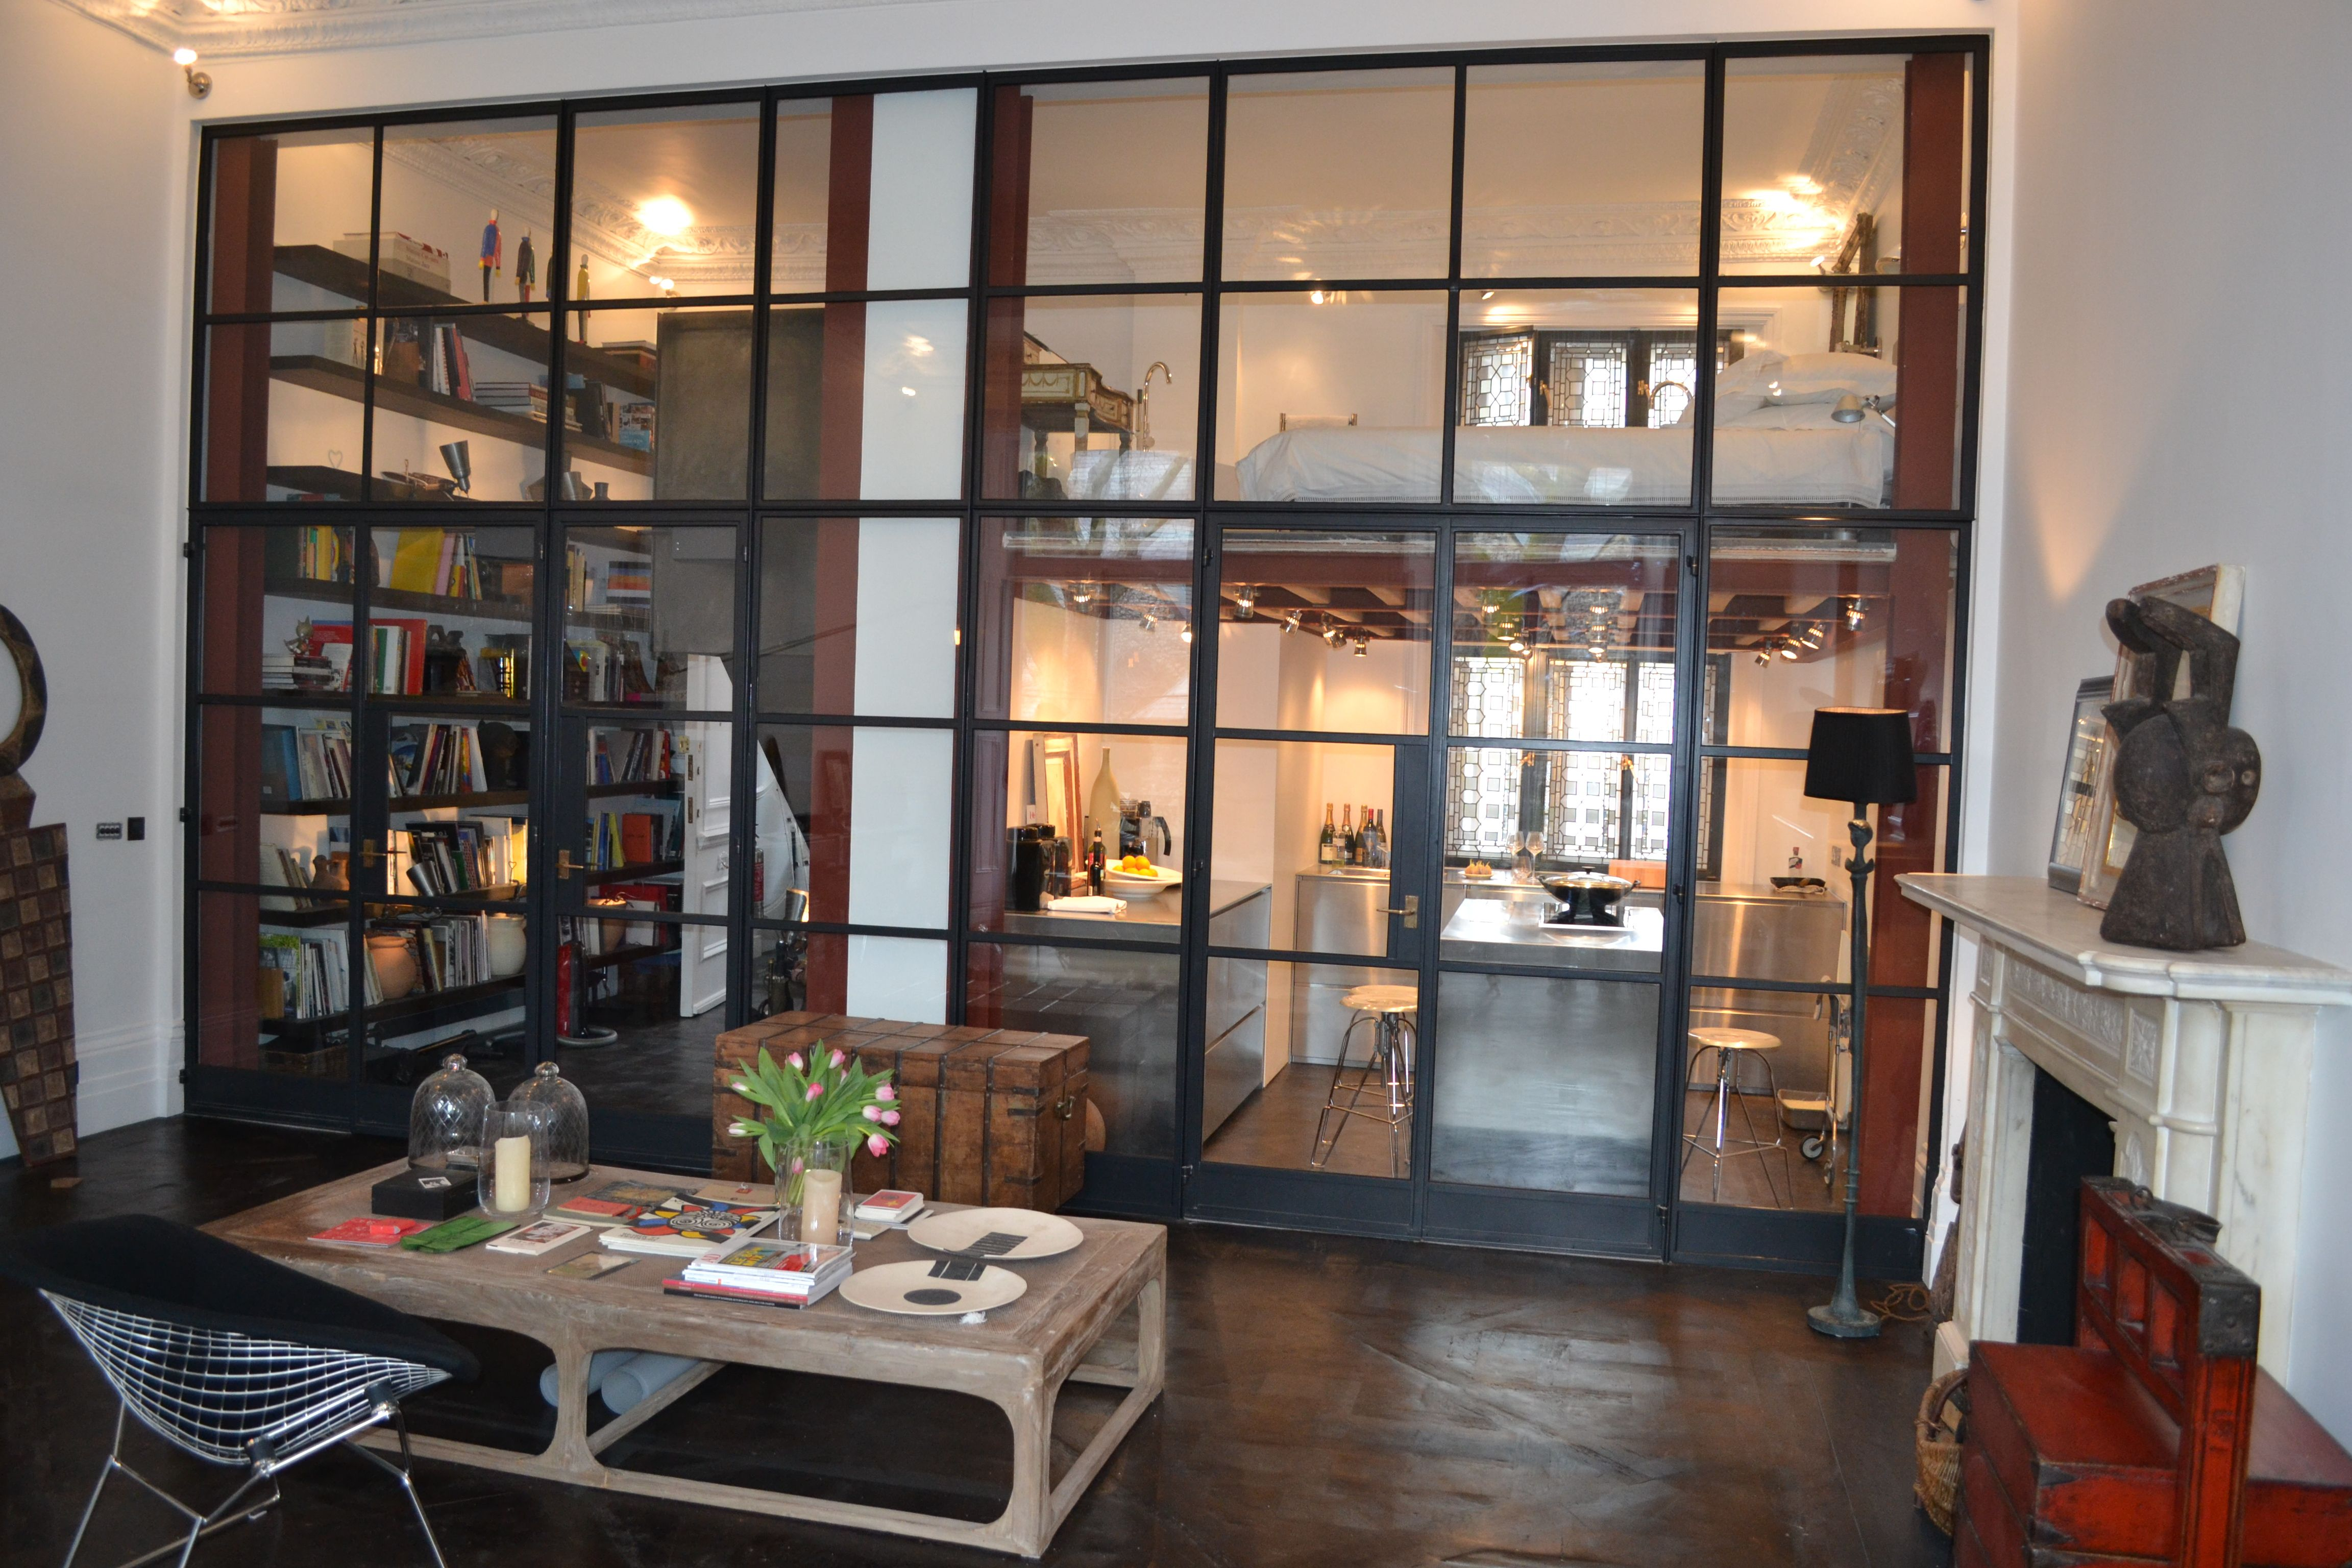 A Crittall door screen a beautiful way to divide your living space